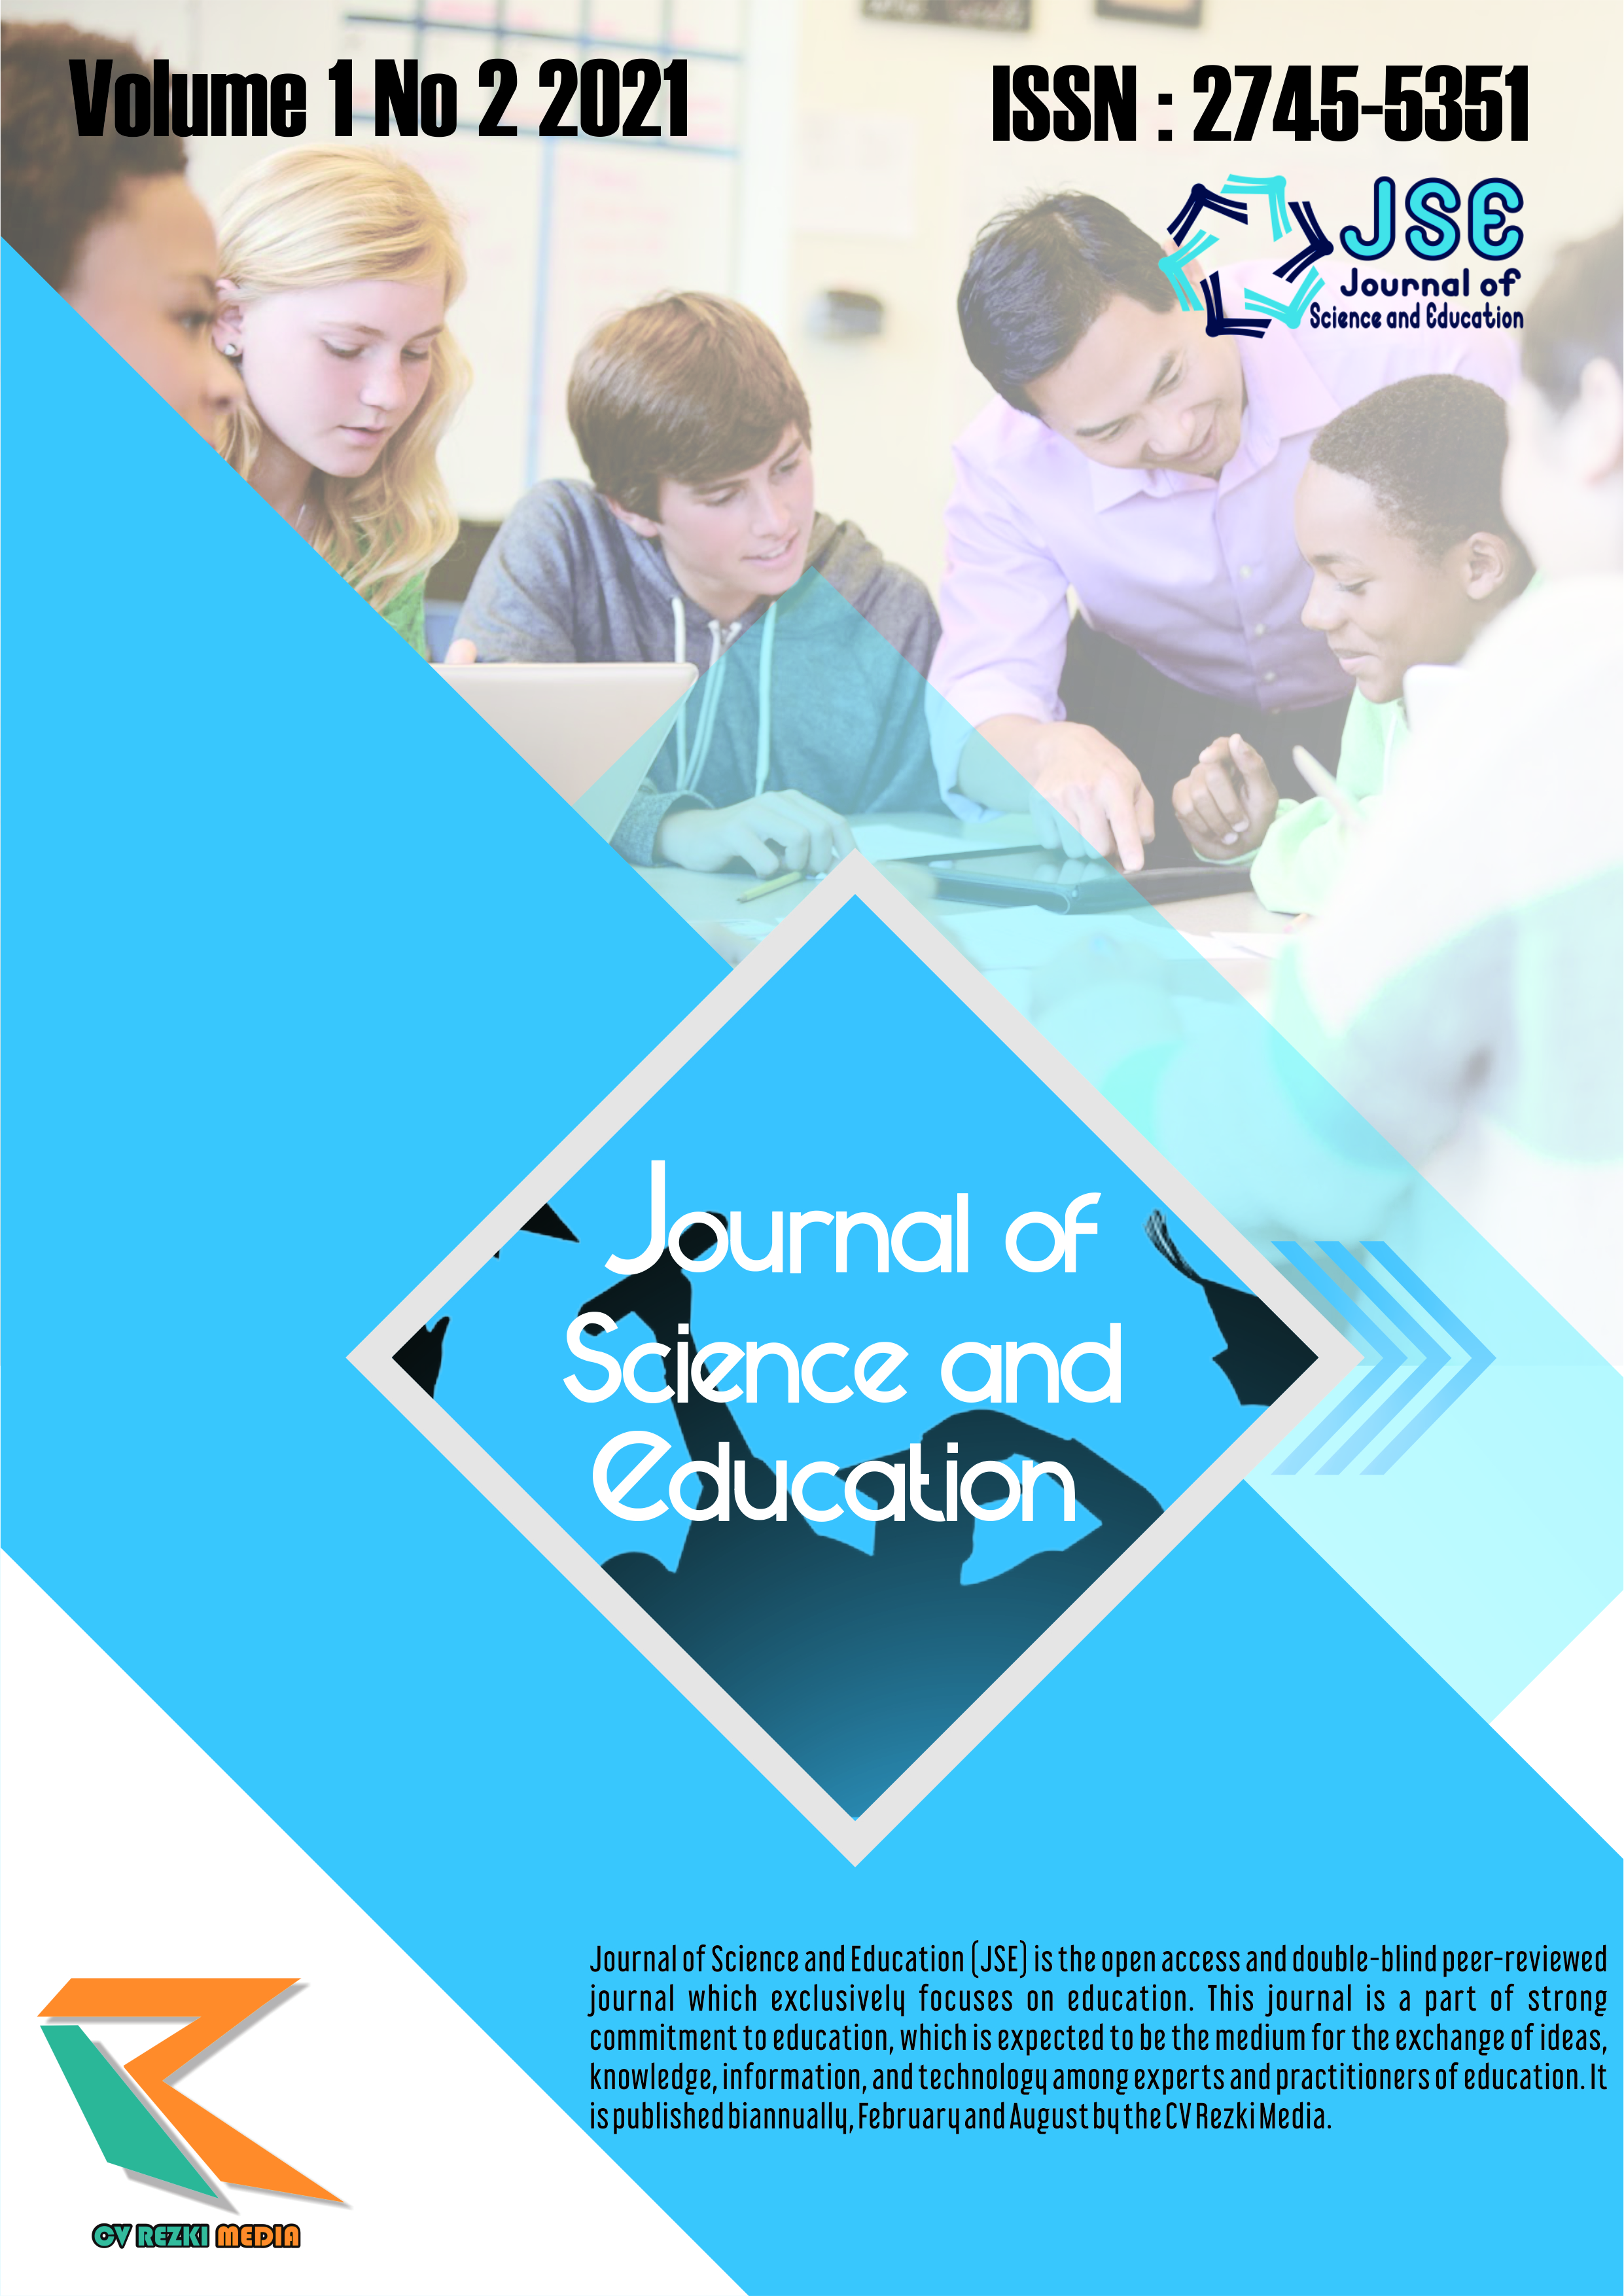 View Vol. 1 No. 2 (2021): Journal of Science and Education (JSE)